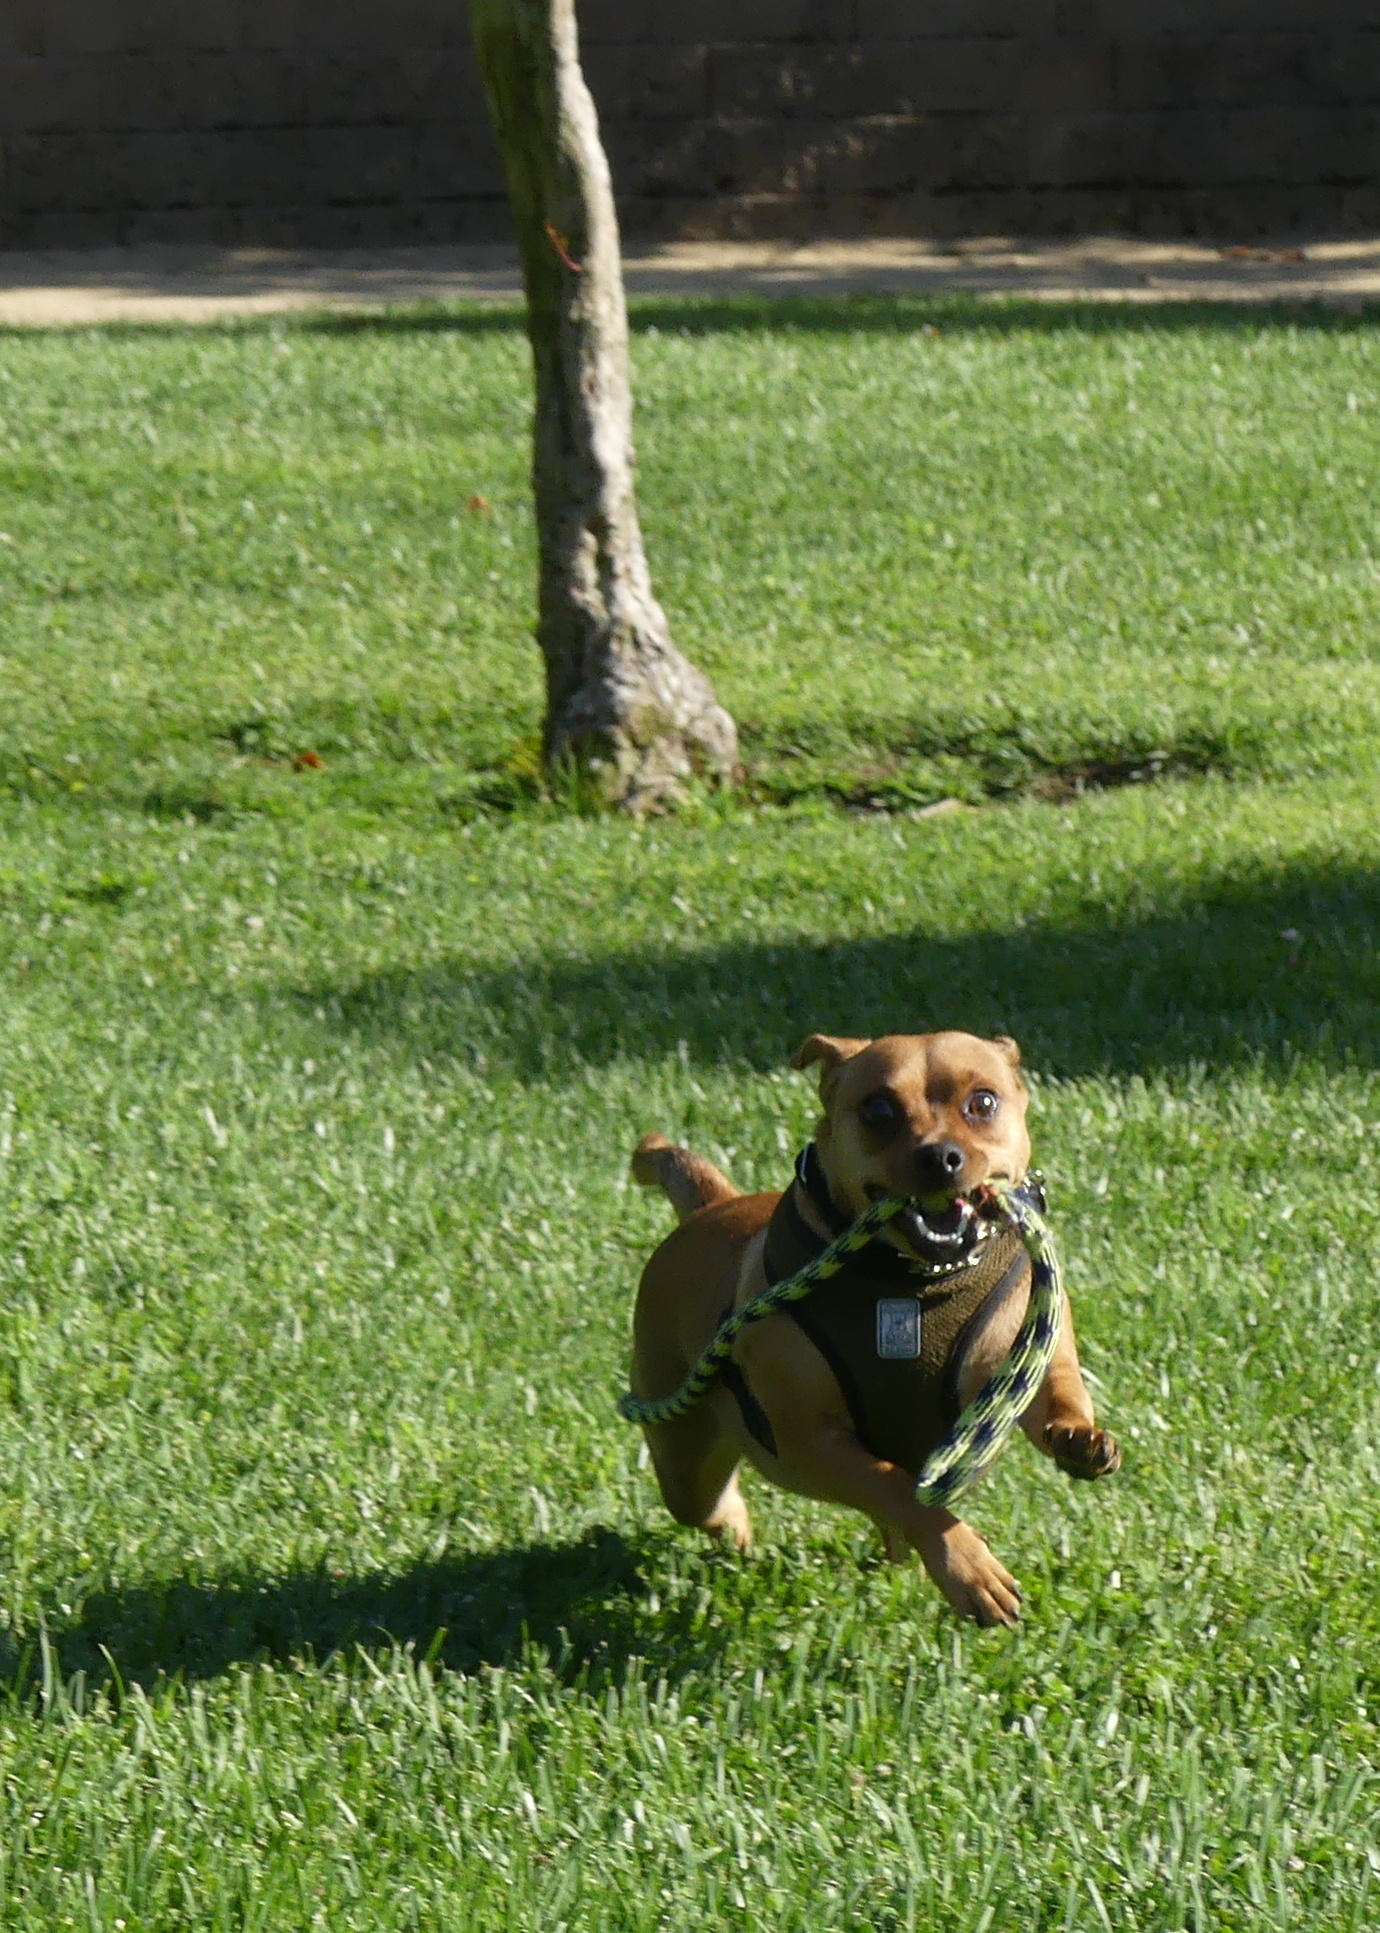 Here's Pepi having a run.